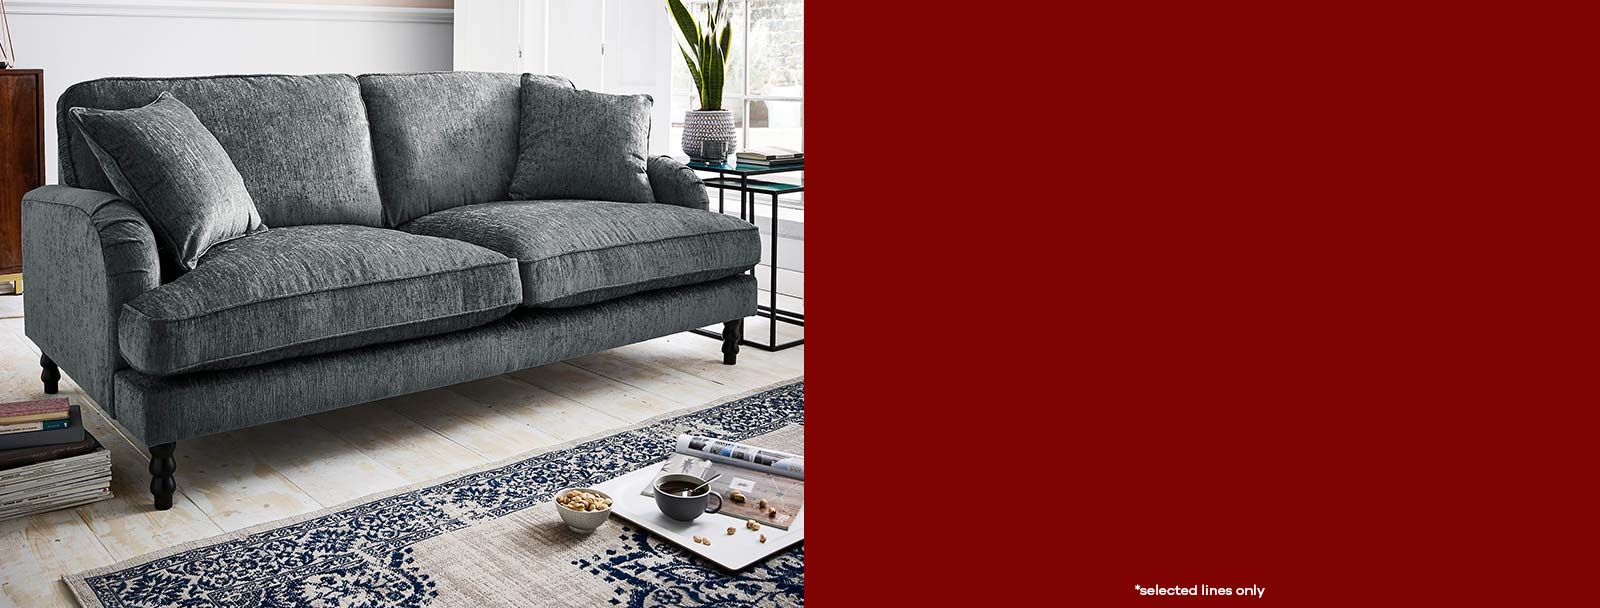 Up to 30% Off* Furniture - Get in time for Christmas